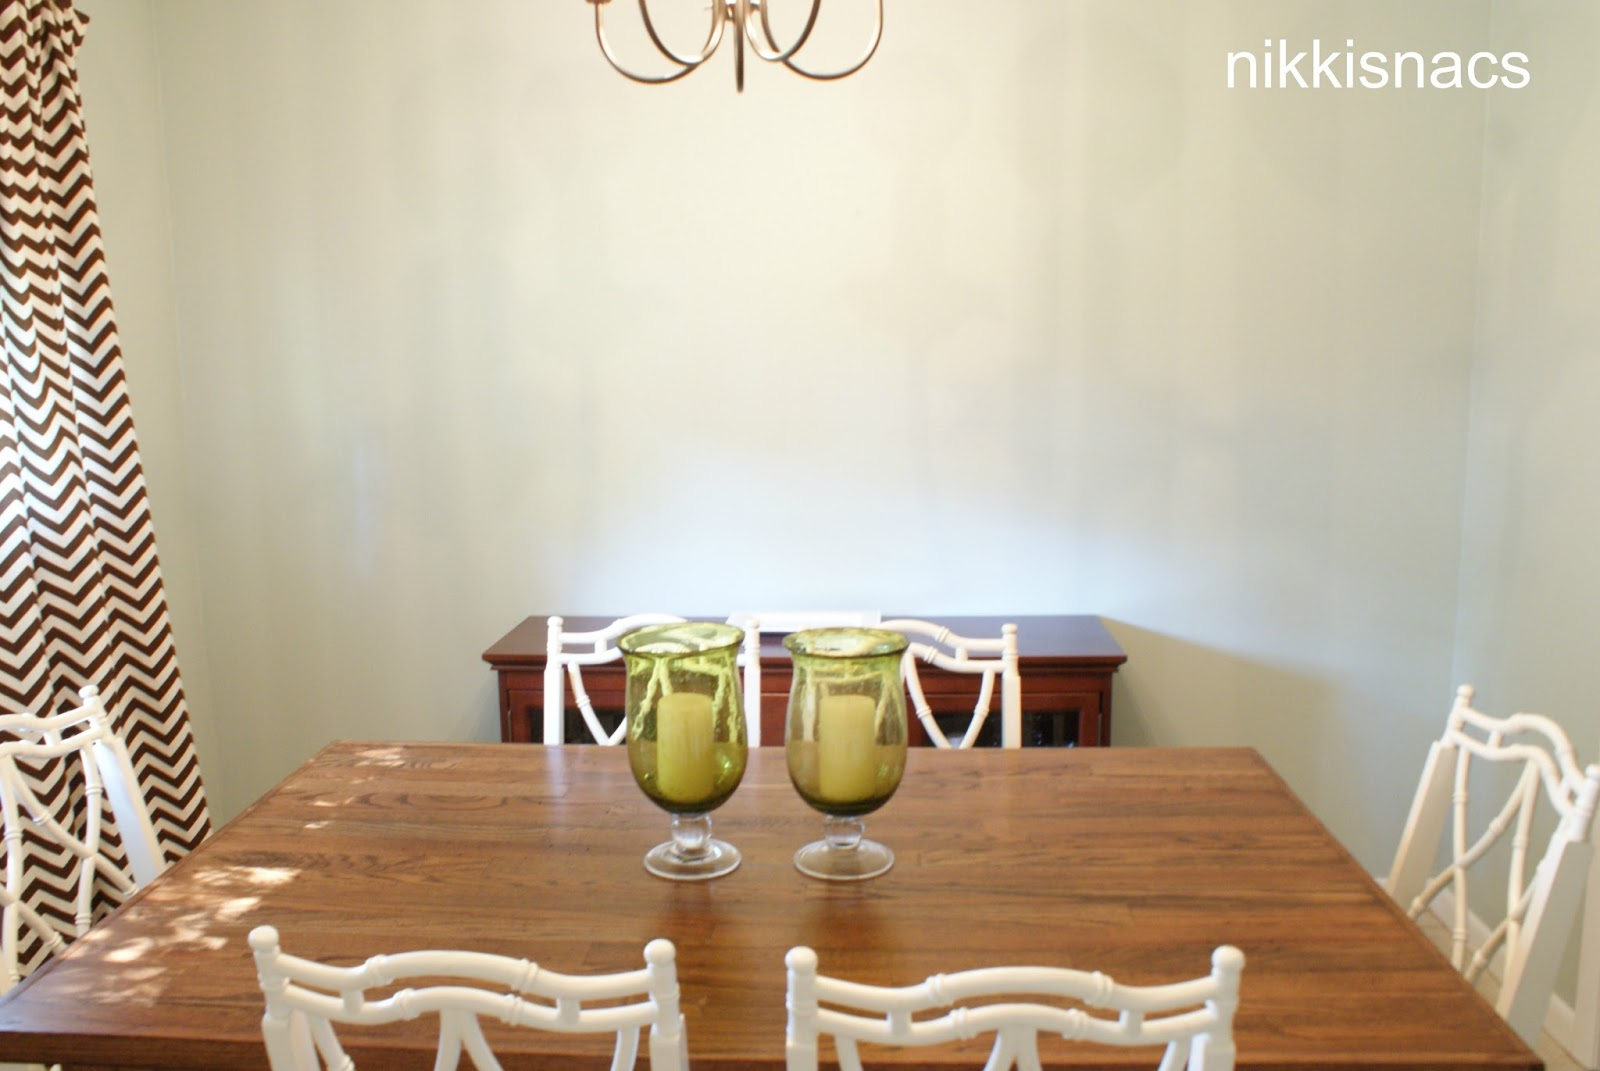 Blank Wall Ideas Dining Room : Nikkis nacs dining room homeschool lightened up